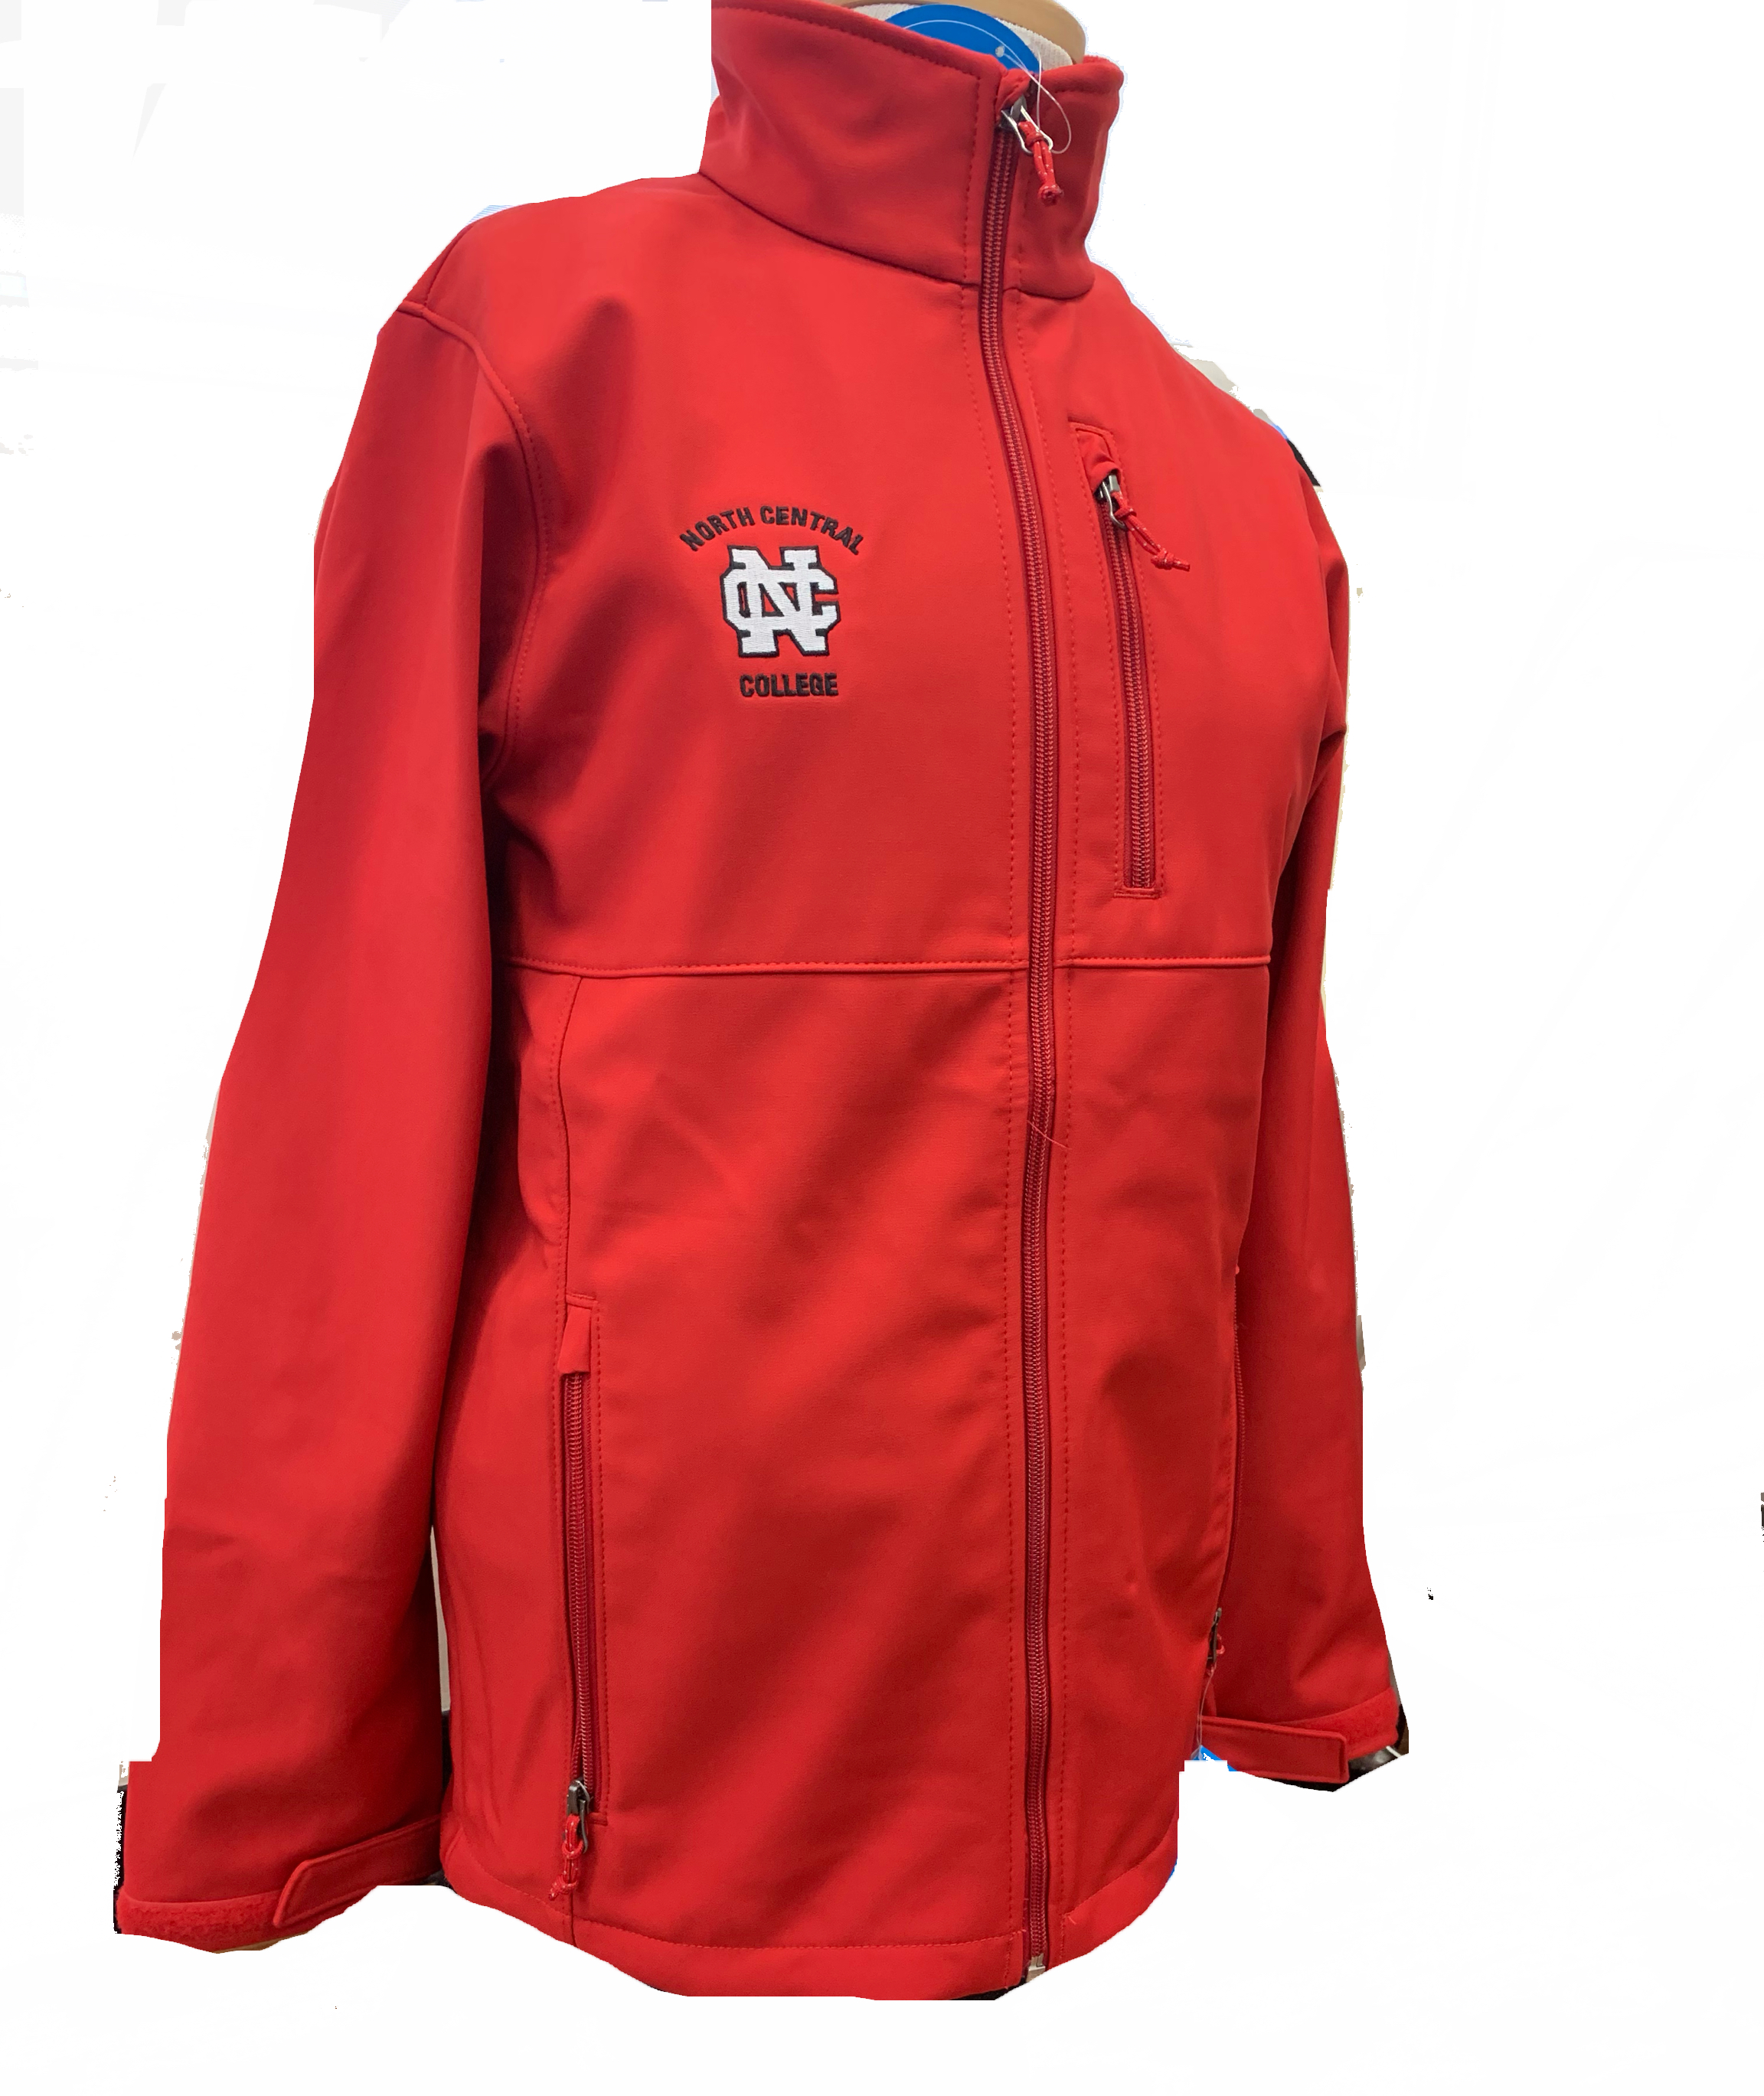 Alternative Image for the North Central College Columbia Ascender SoftShell Jacket product